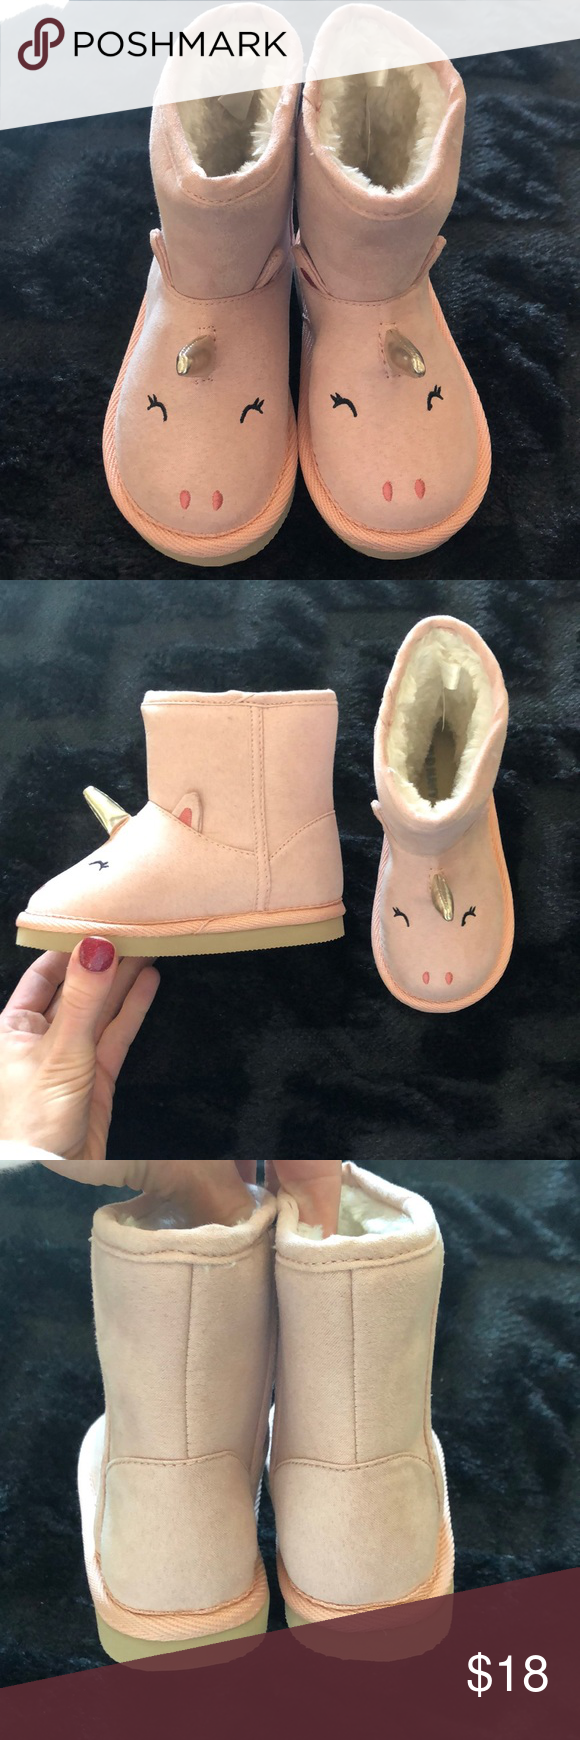 Old Navy Unicorn boots - toddler size 7